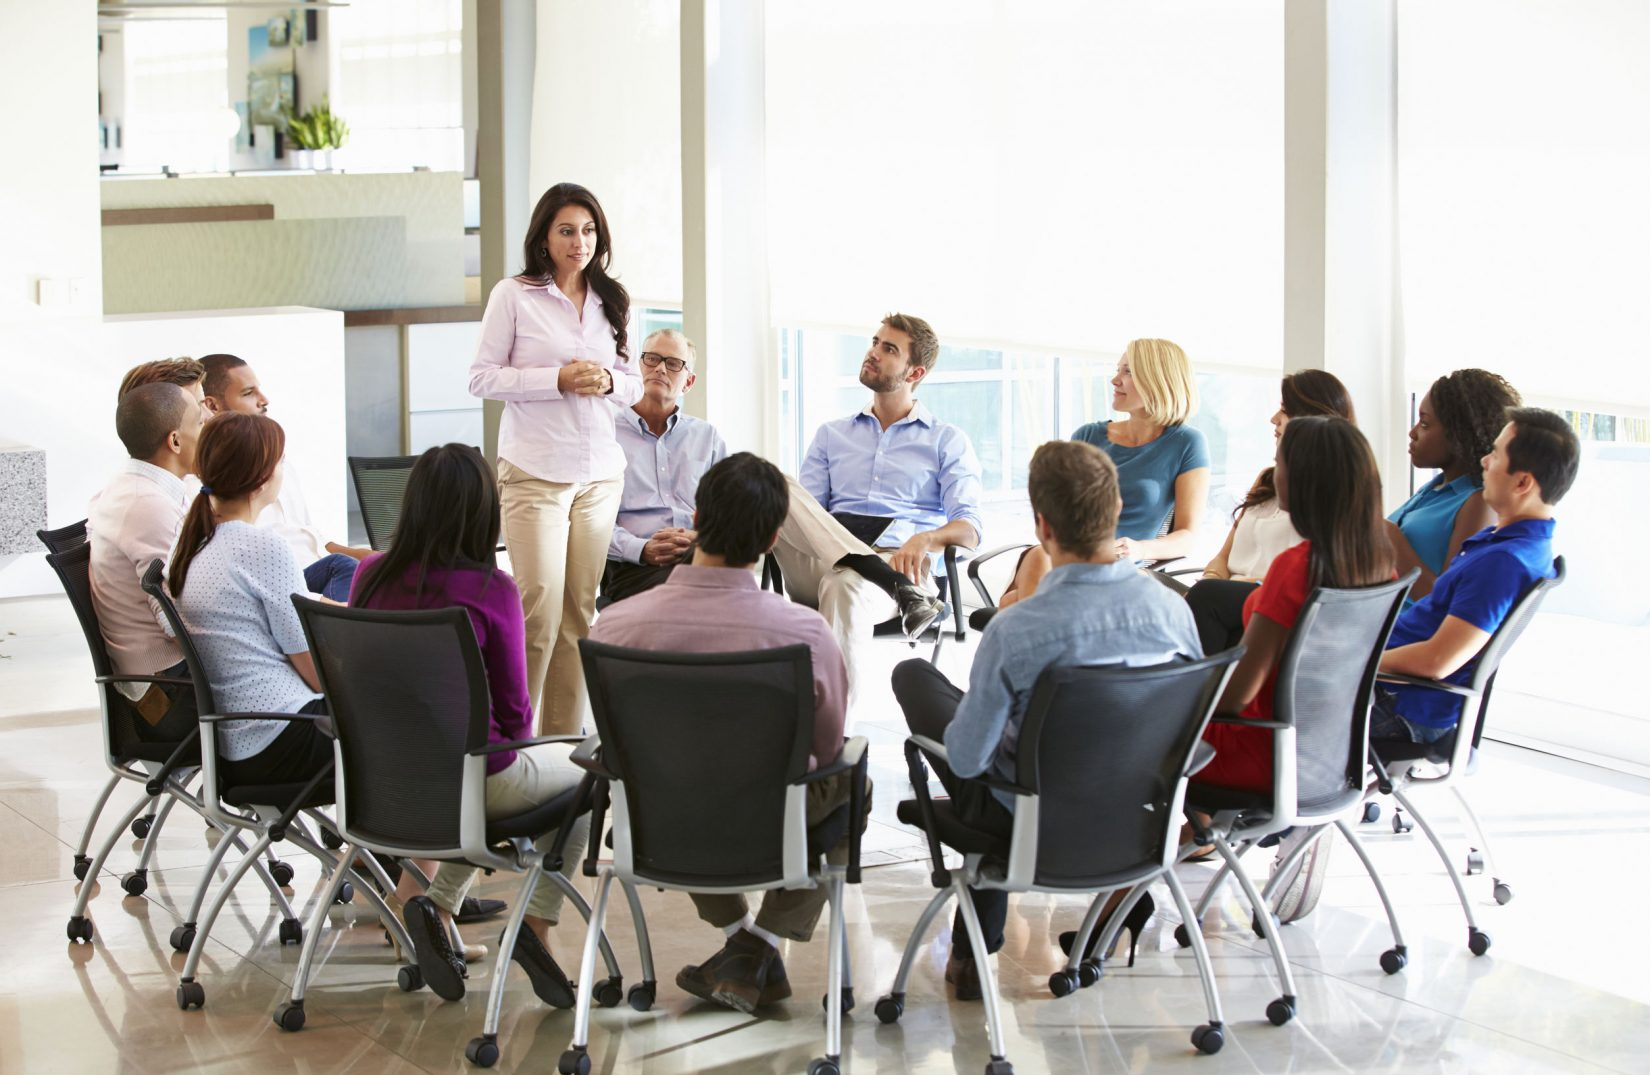 31047574 - businesswoman addressing multi-cultural office staff meeting